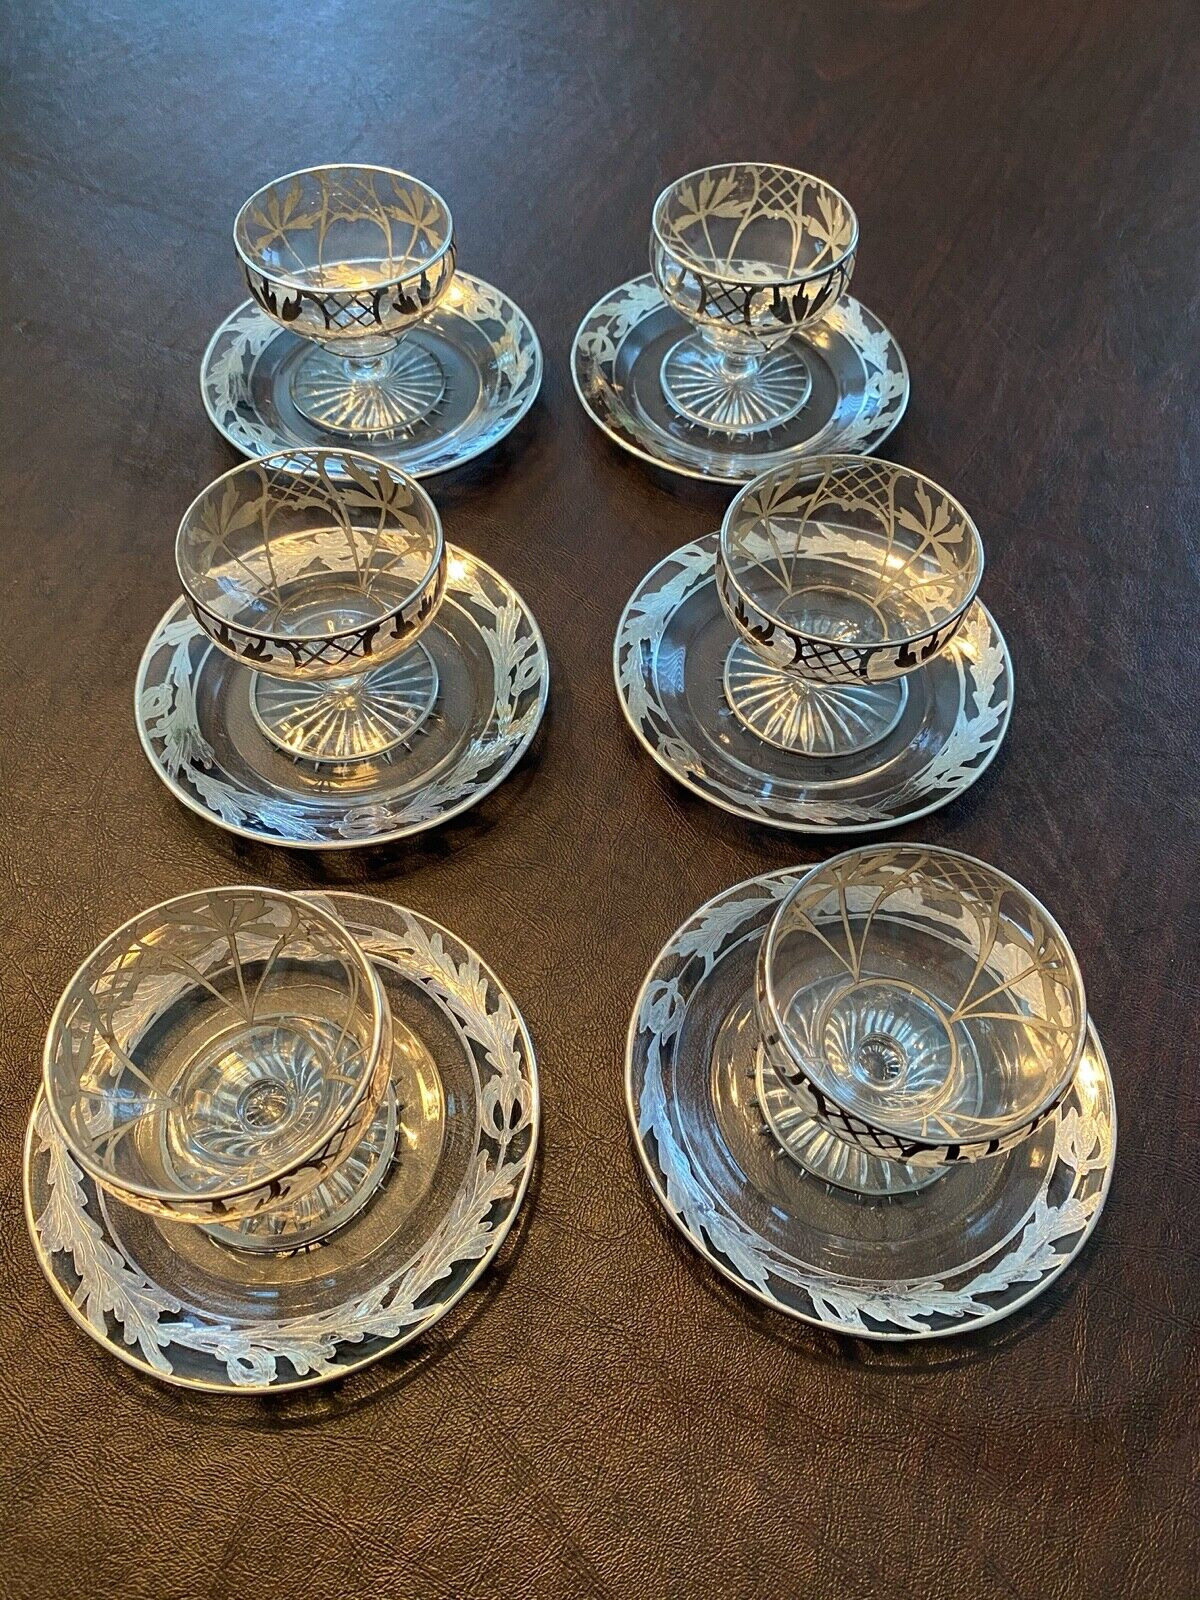 SIX VINTAGE STERLING SILVER OVERLAY ON DESERT CUPS AND PLATES - $49.95